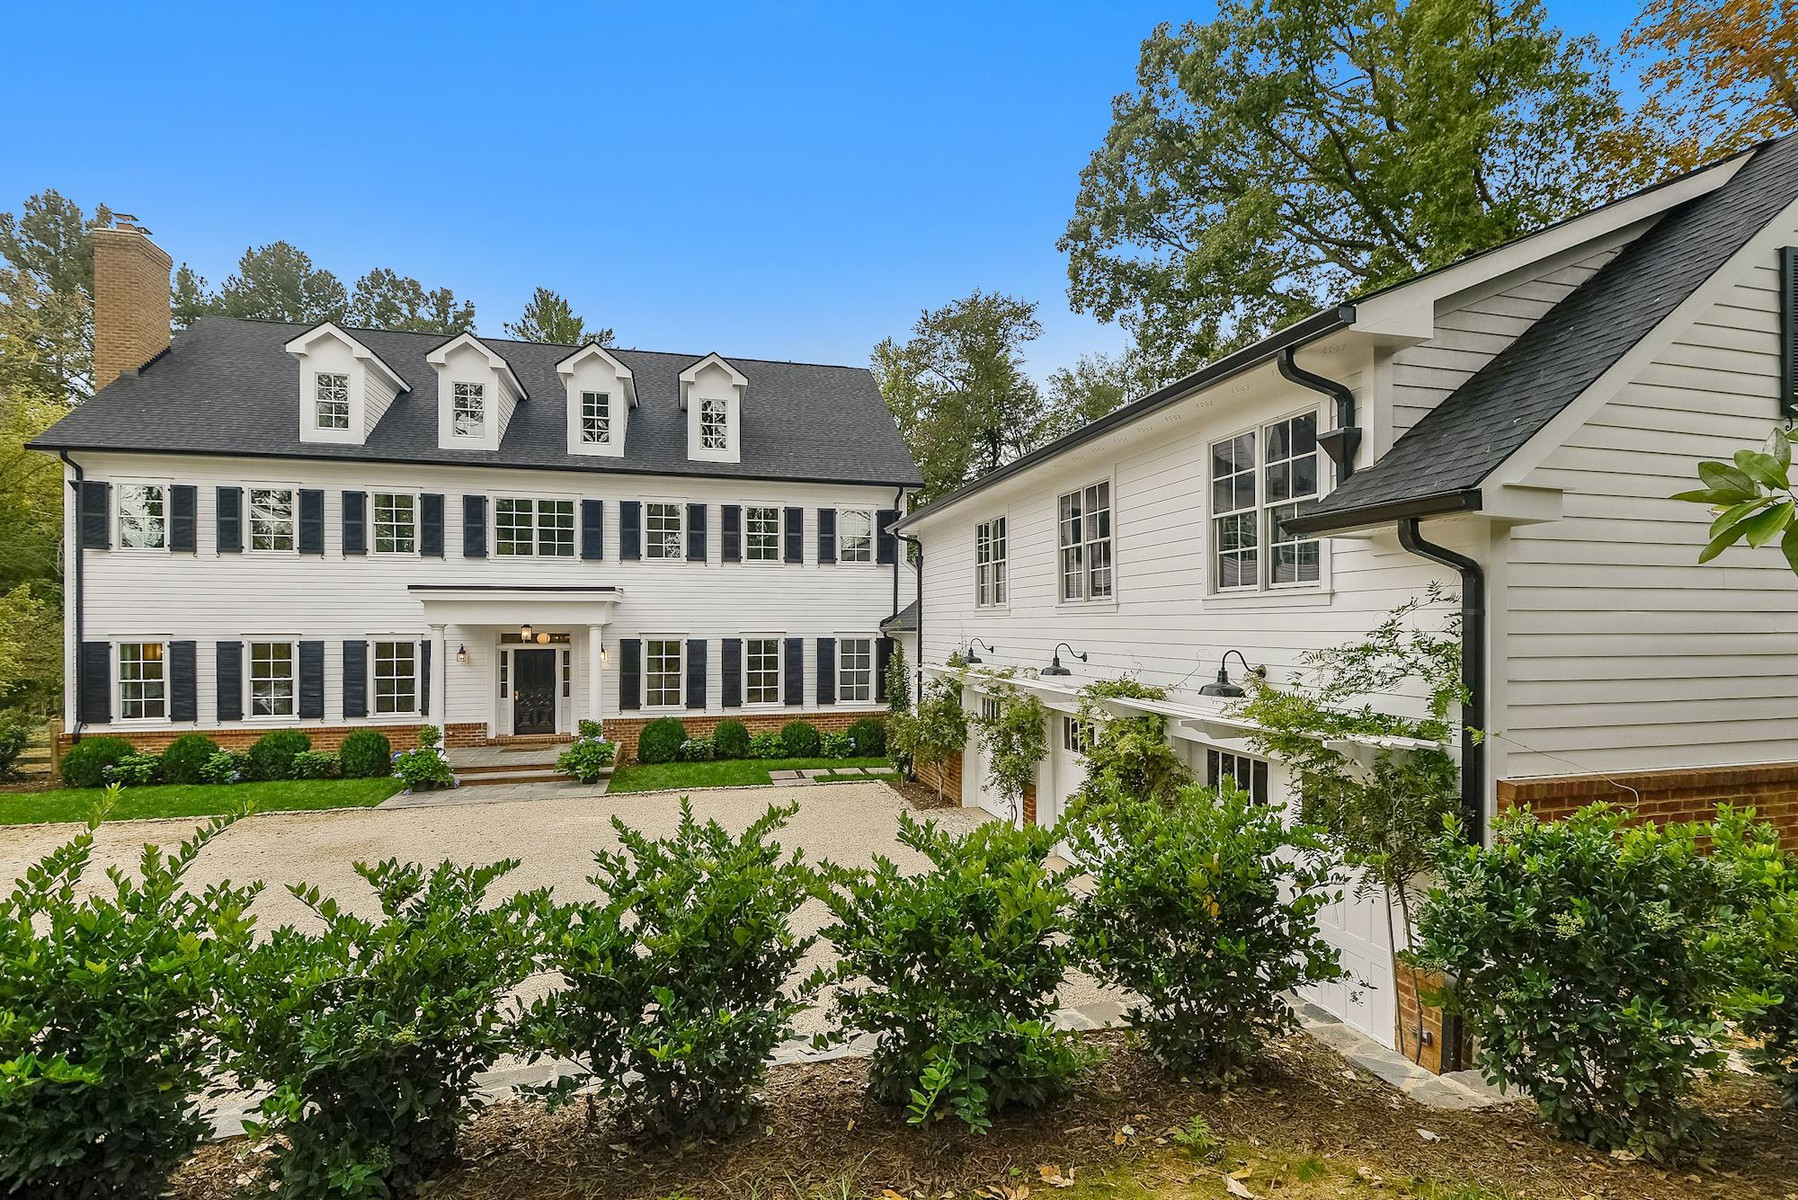 Single Family Home for Sale at 6349 Georgetown Pike, Mclean McLean, Virginia 22101 United States